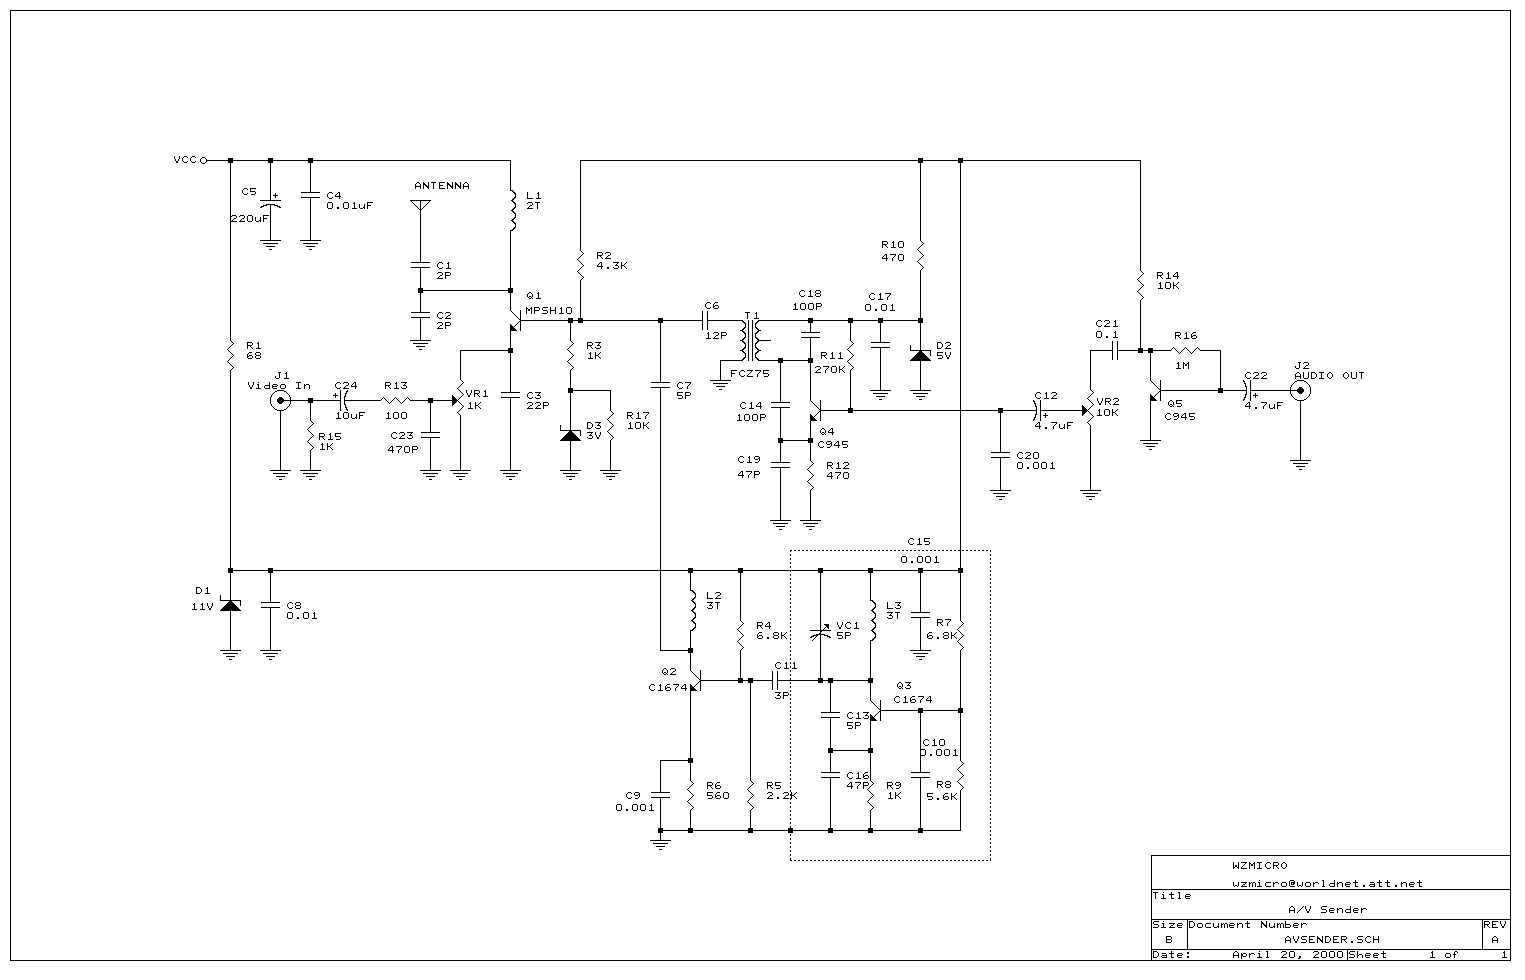 Cctv Camera Circuit Diagram Not Lossing Wiring 555 Timer Remote Control Jammer Wireless Video Transmitter Pdf System